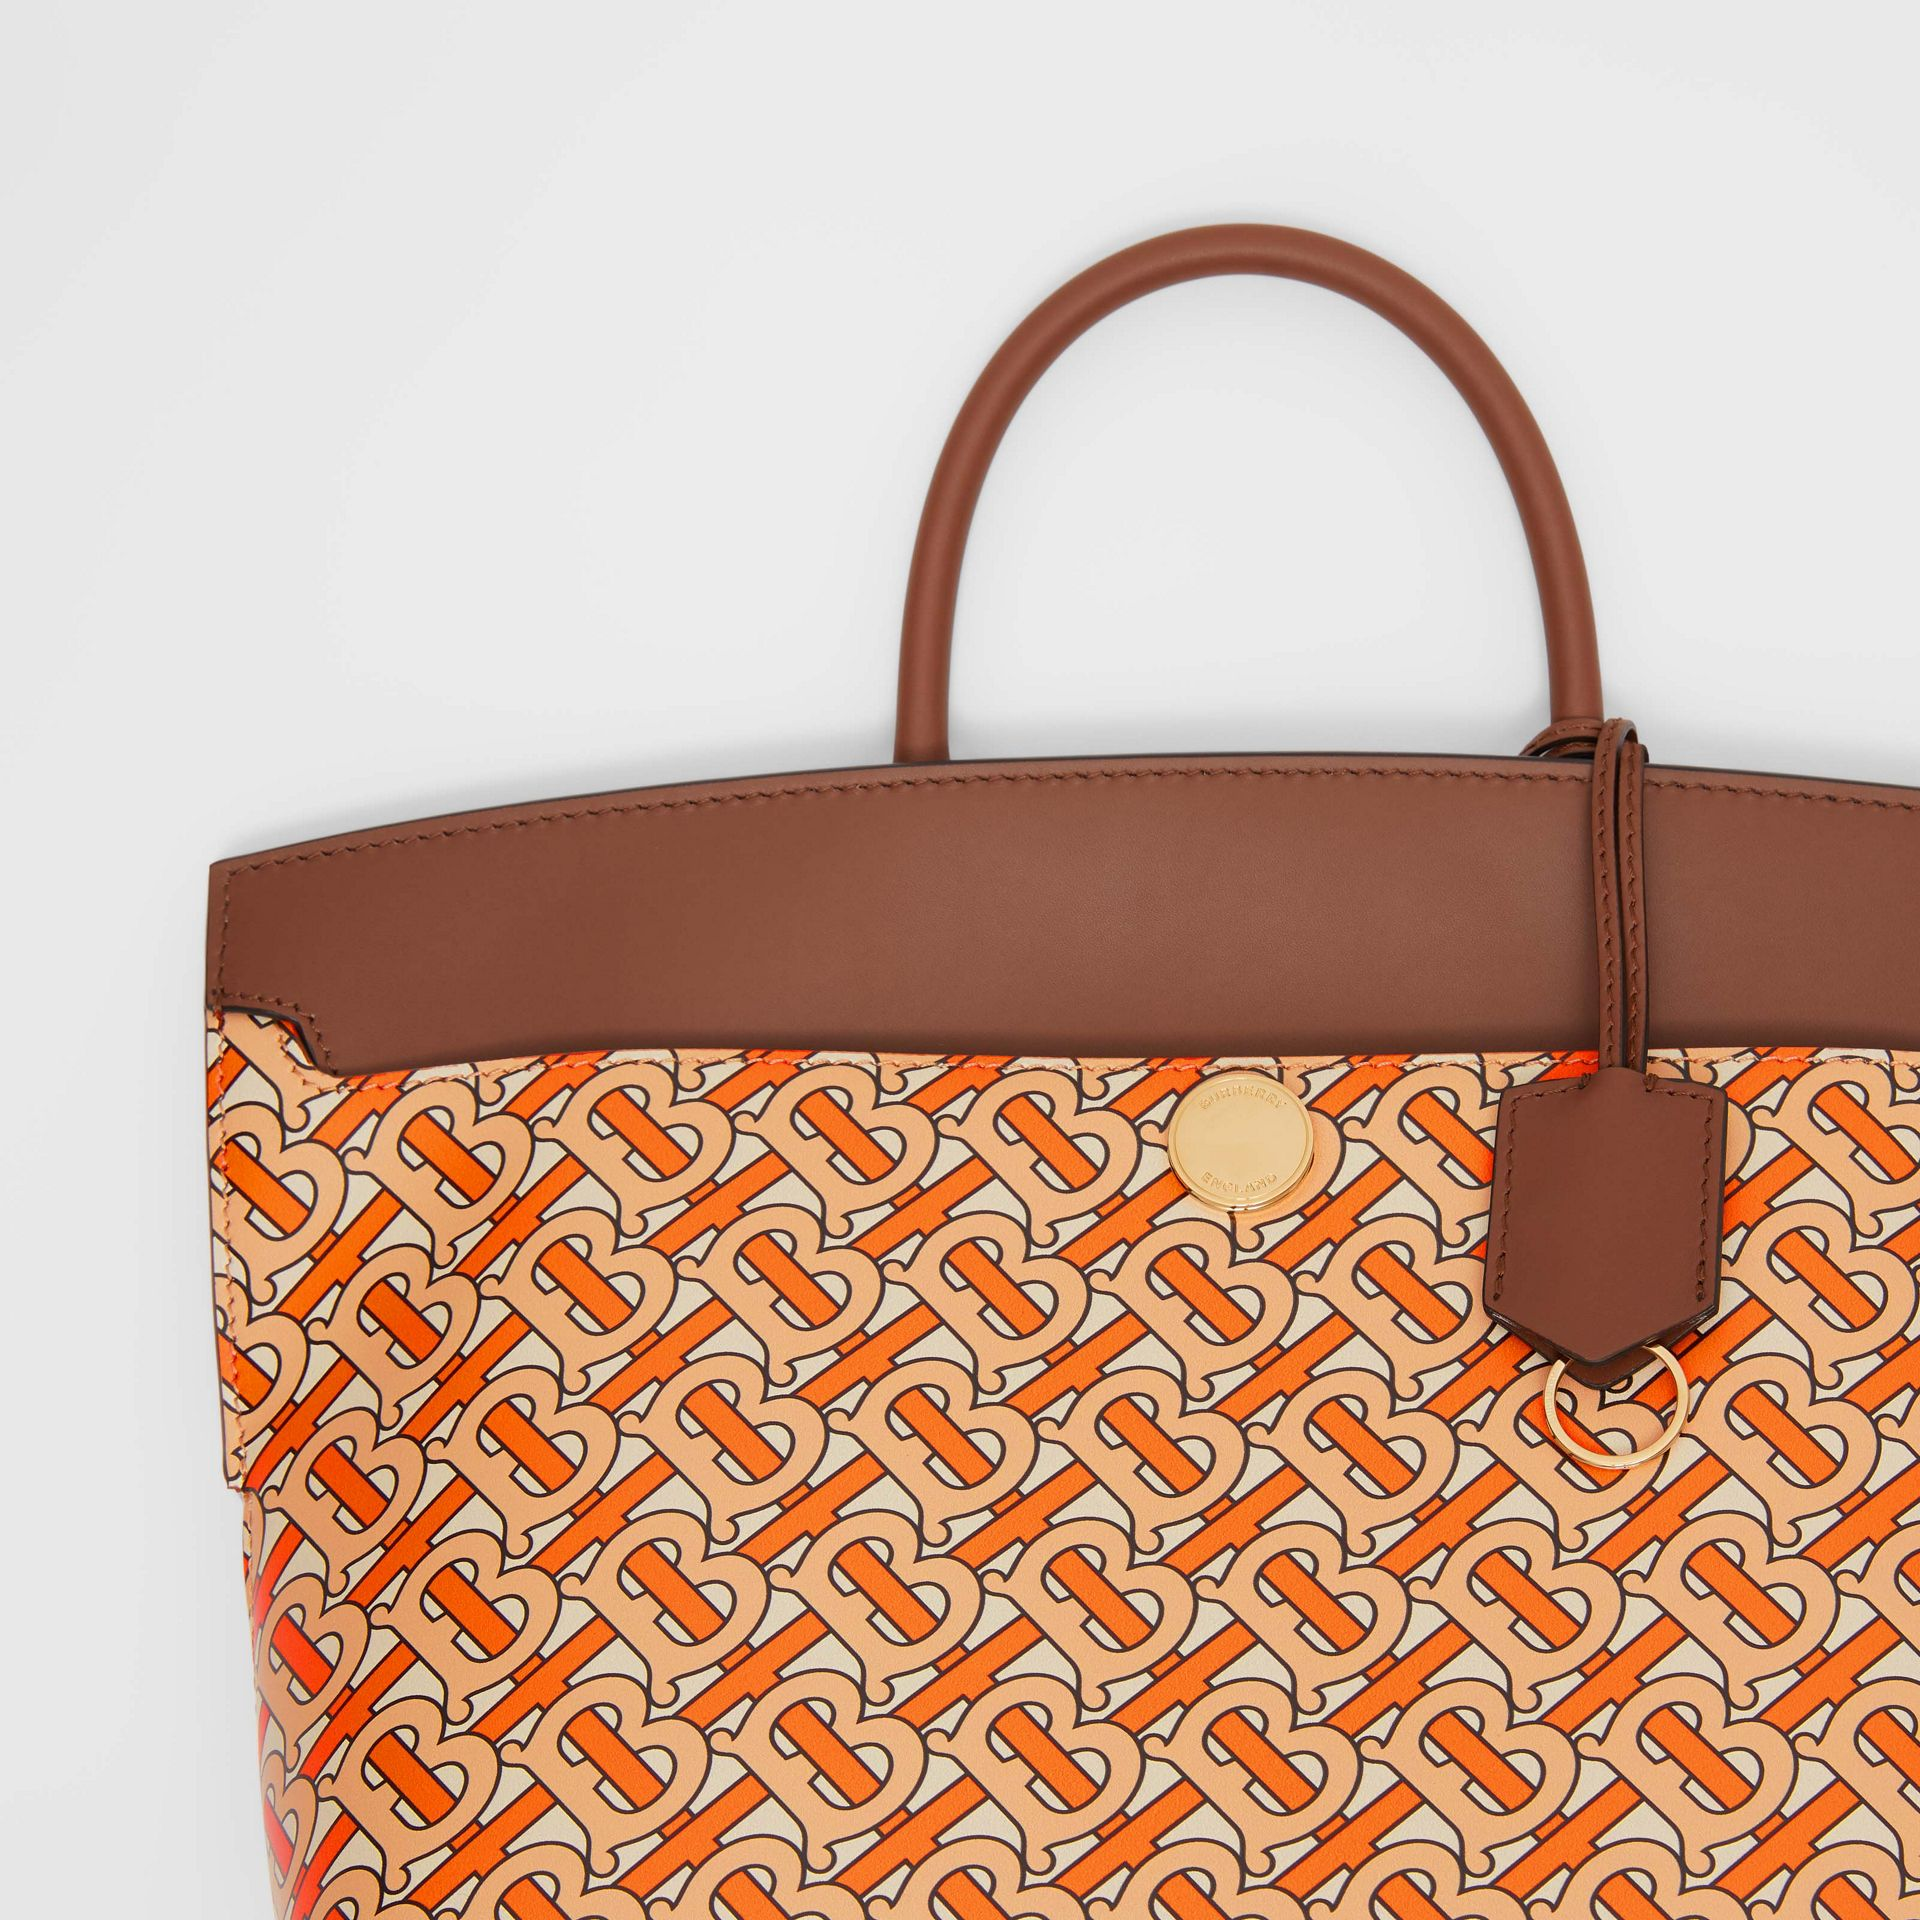 Small Monogram Print Leather Society Top Handle Bag in Bright Orange - Women | Burberry - gallery image 1